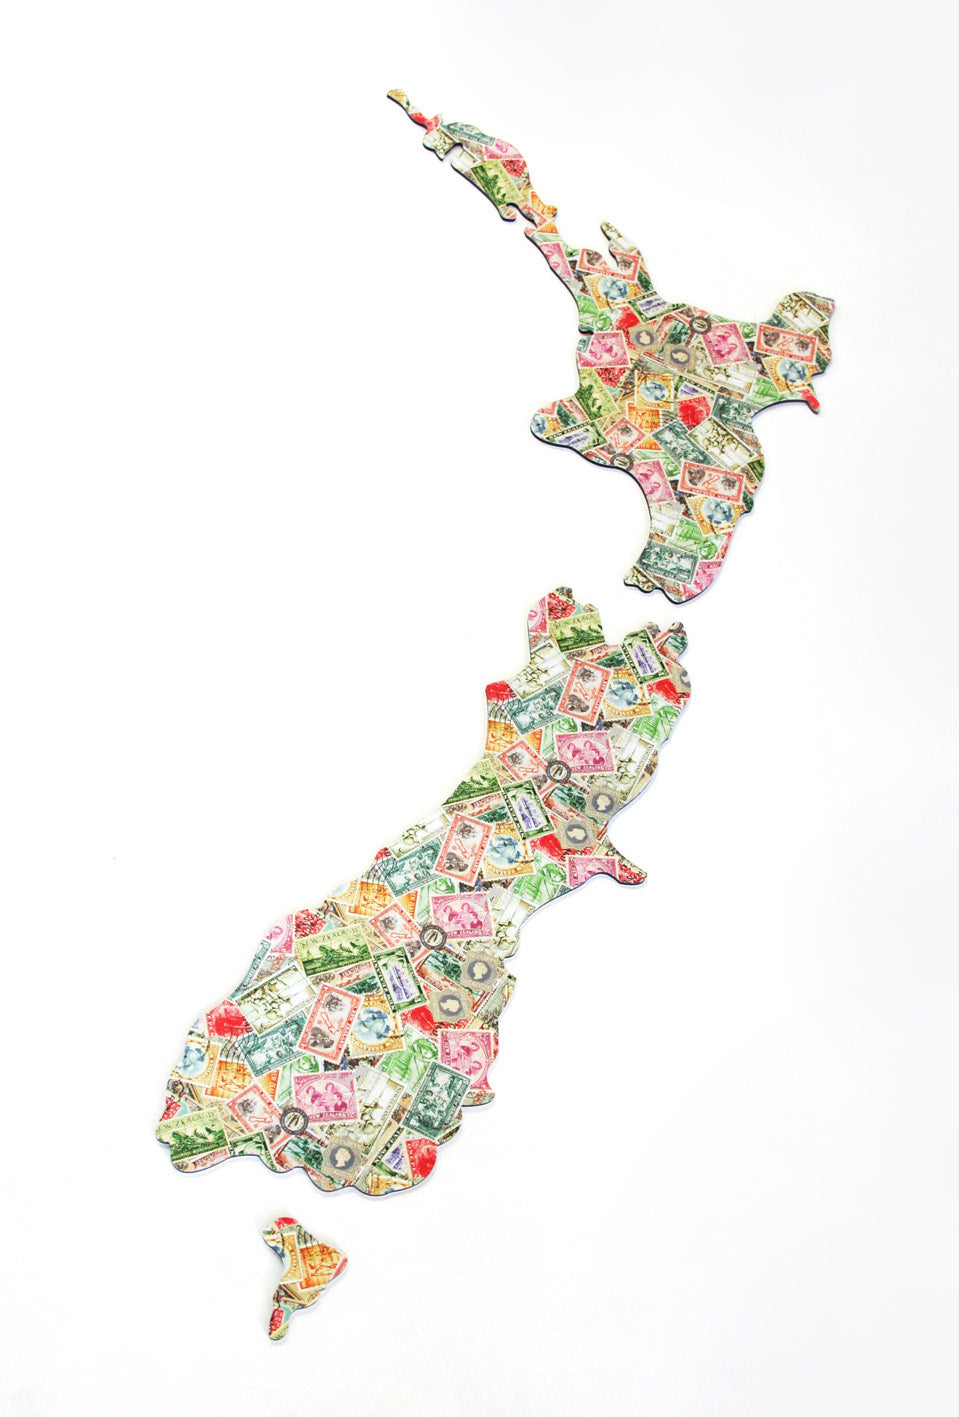 ACM Art NZ Map-Vintage Stamps Design - Kiwi Collections